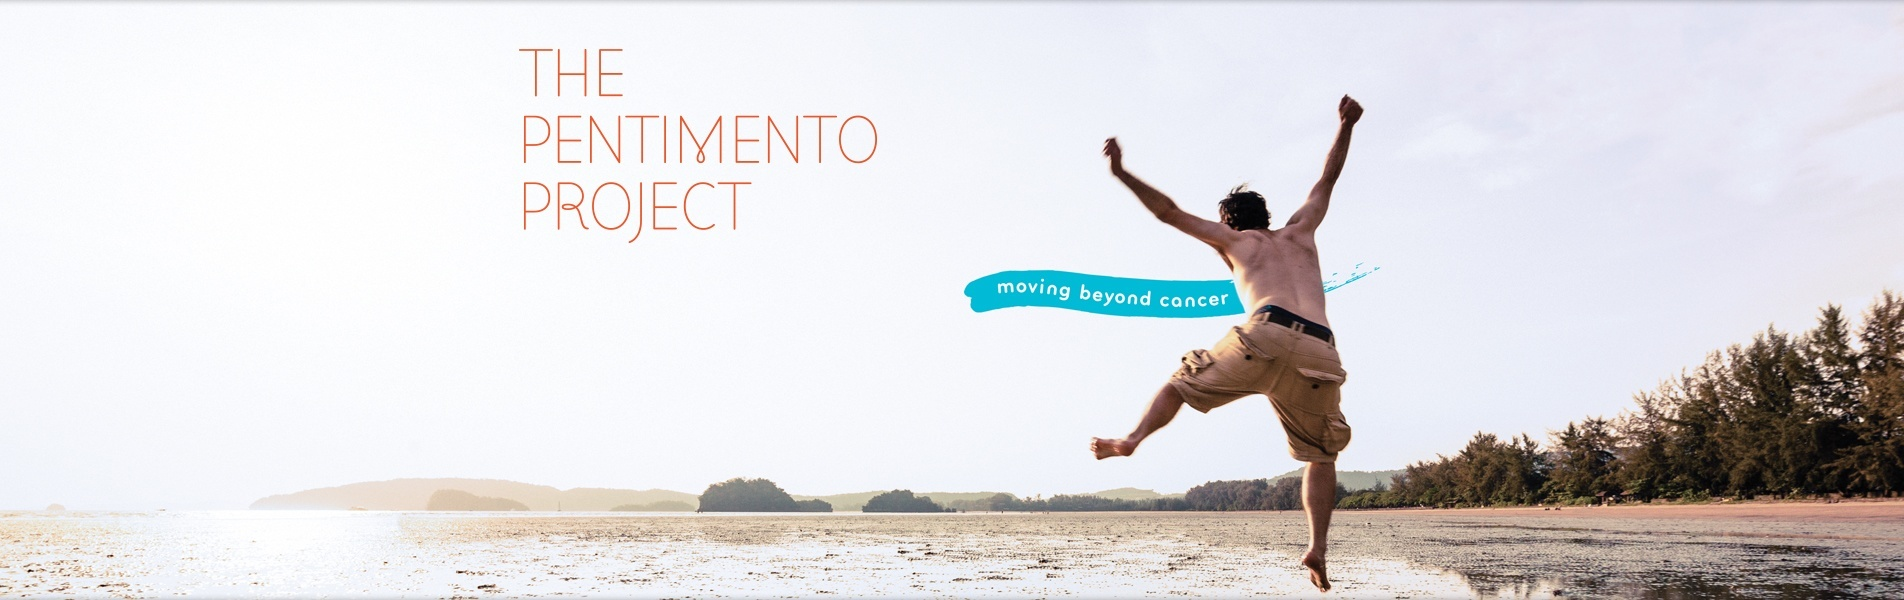 The Pentimento Project